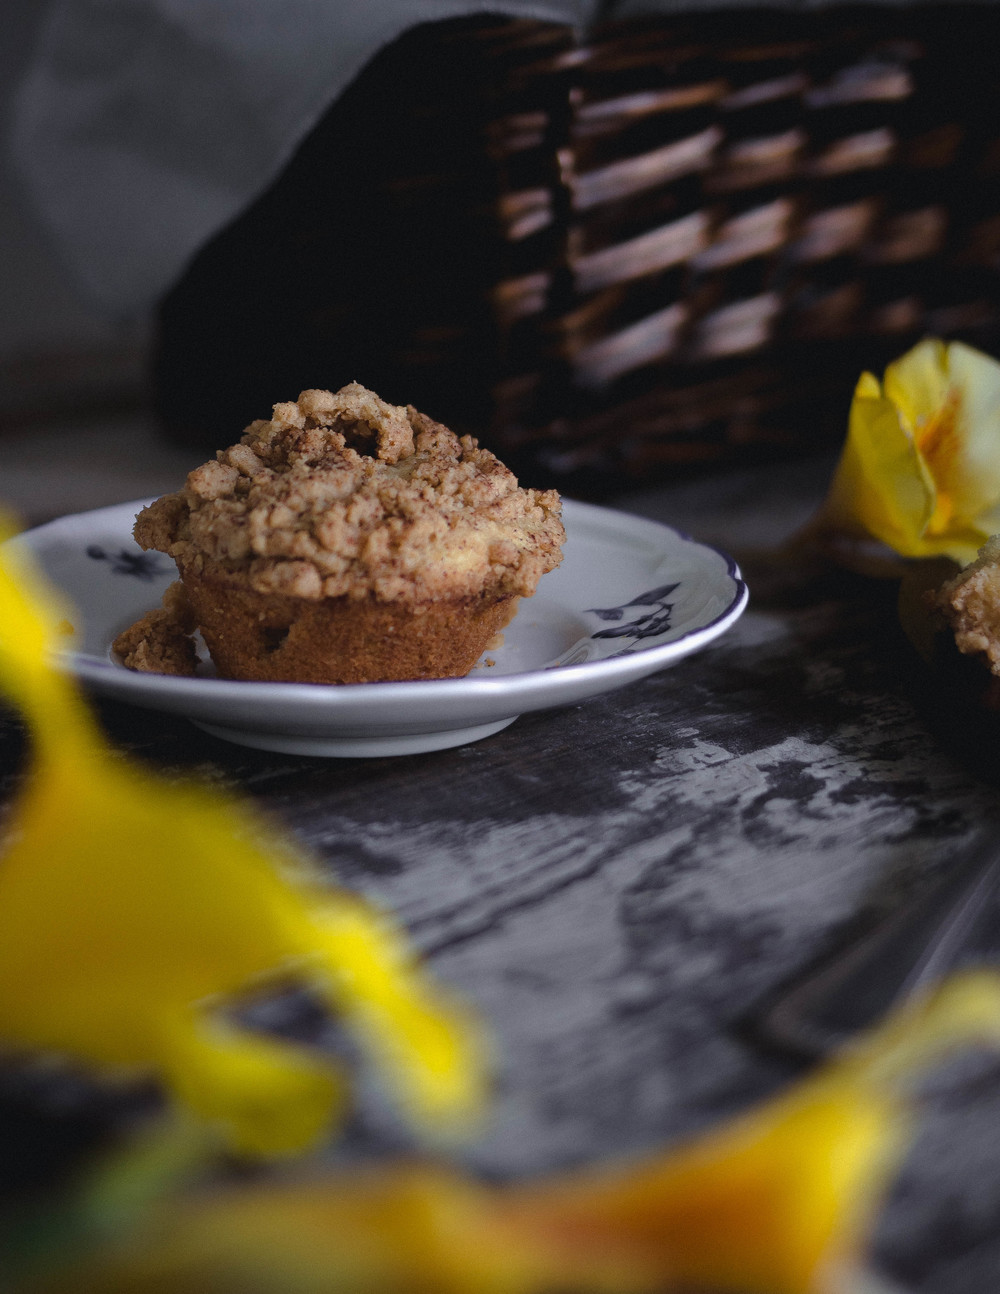 Super moist sour cream and peanut streusel muffins, foolproof | from scratch, mostly